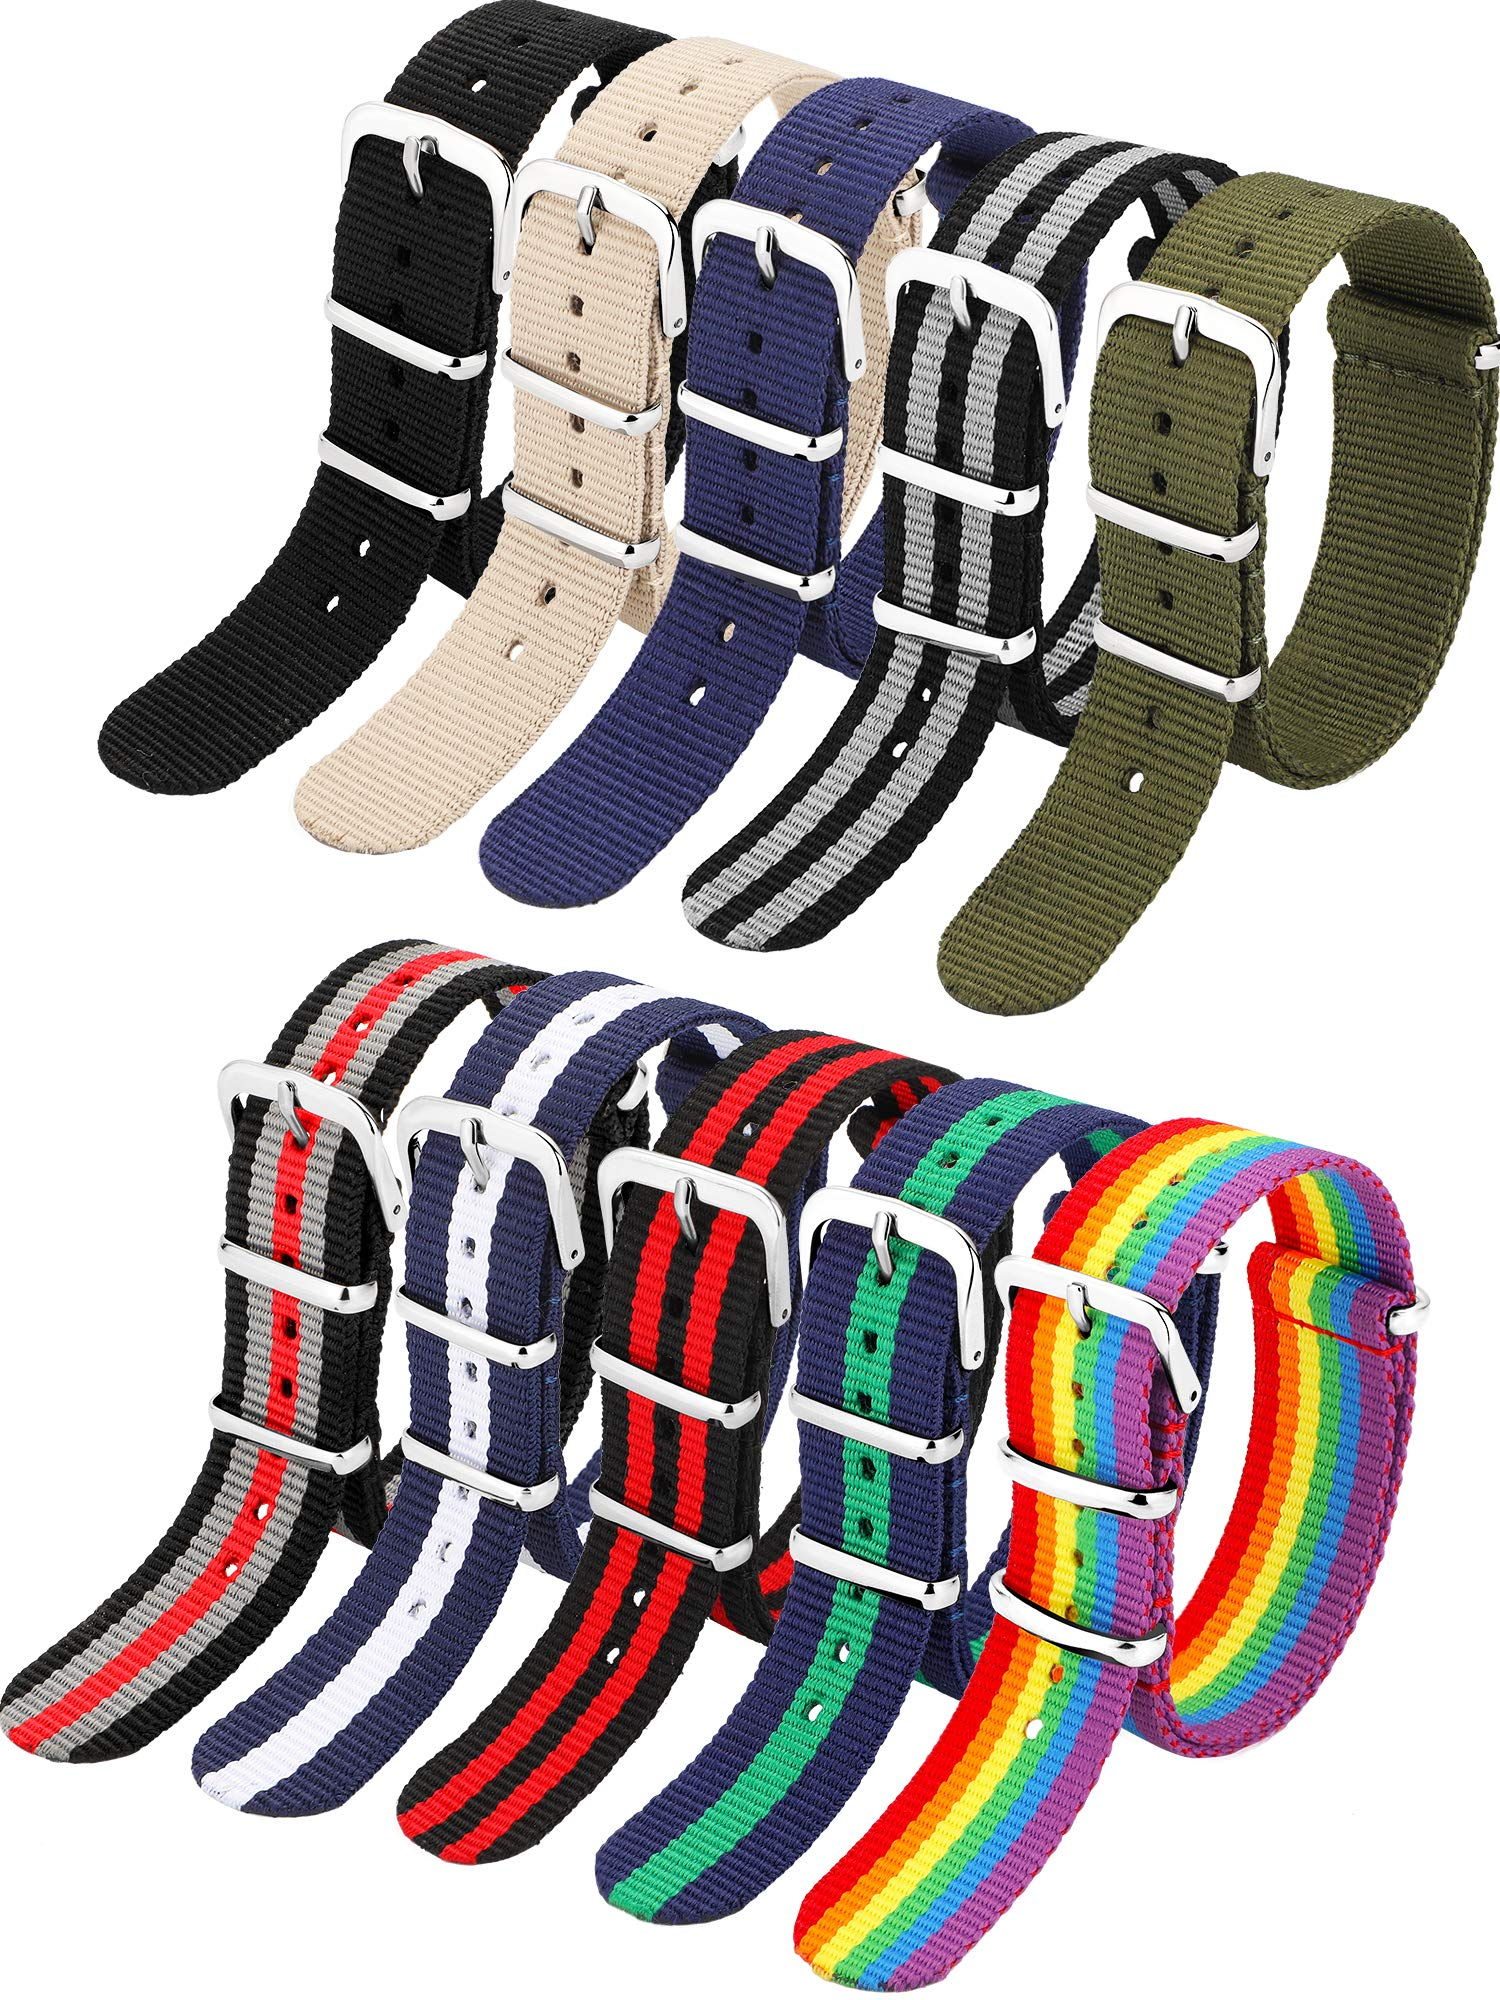 10 Pieces Nylon Watch Band Watch Straps Replacement with Stainless Steel Buckle for Men and Women's Watch Band Replacing, 18 mm by meekoo